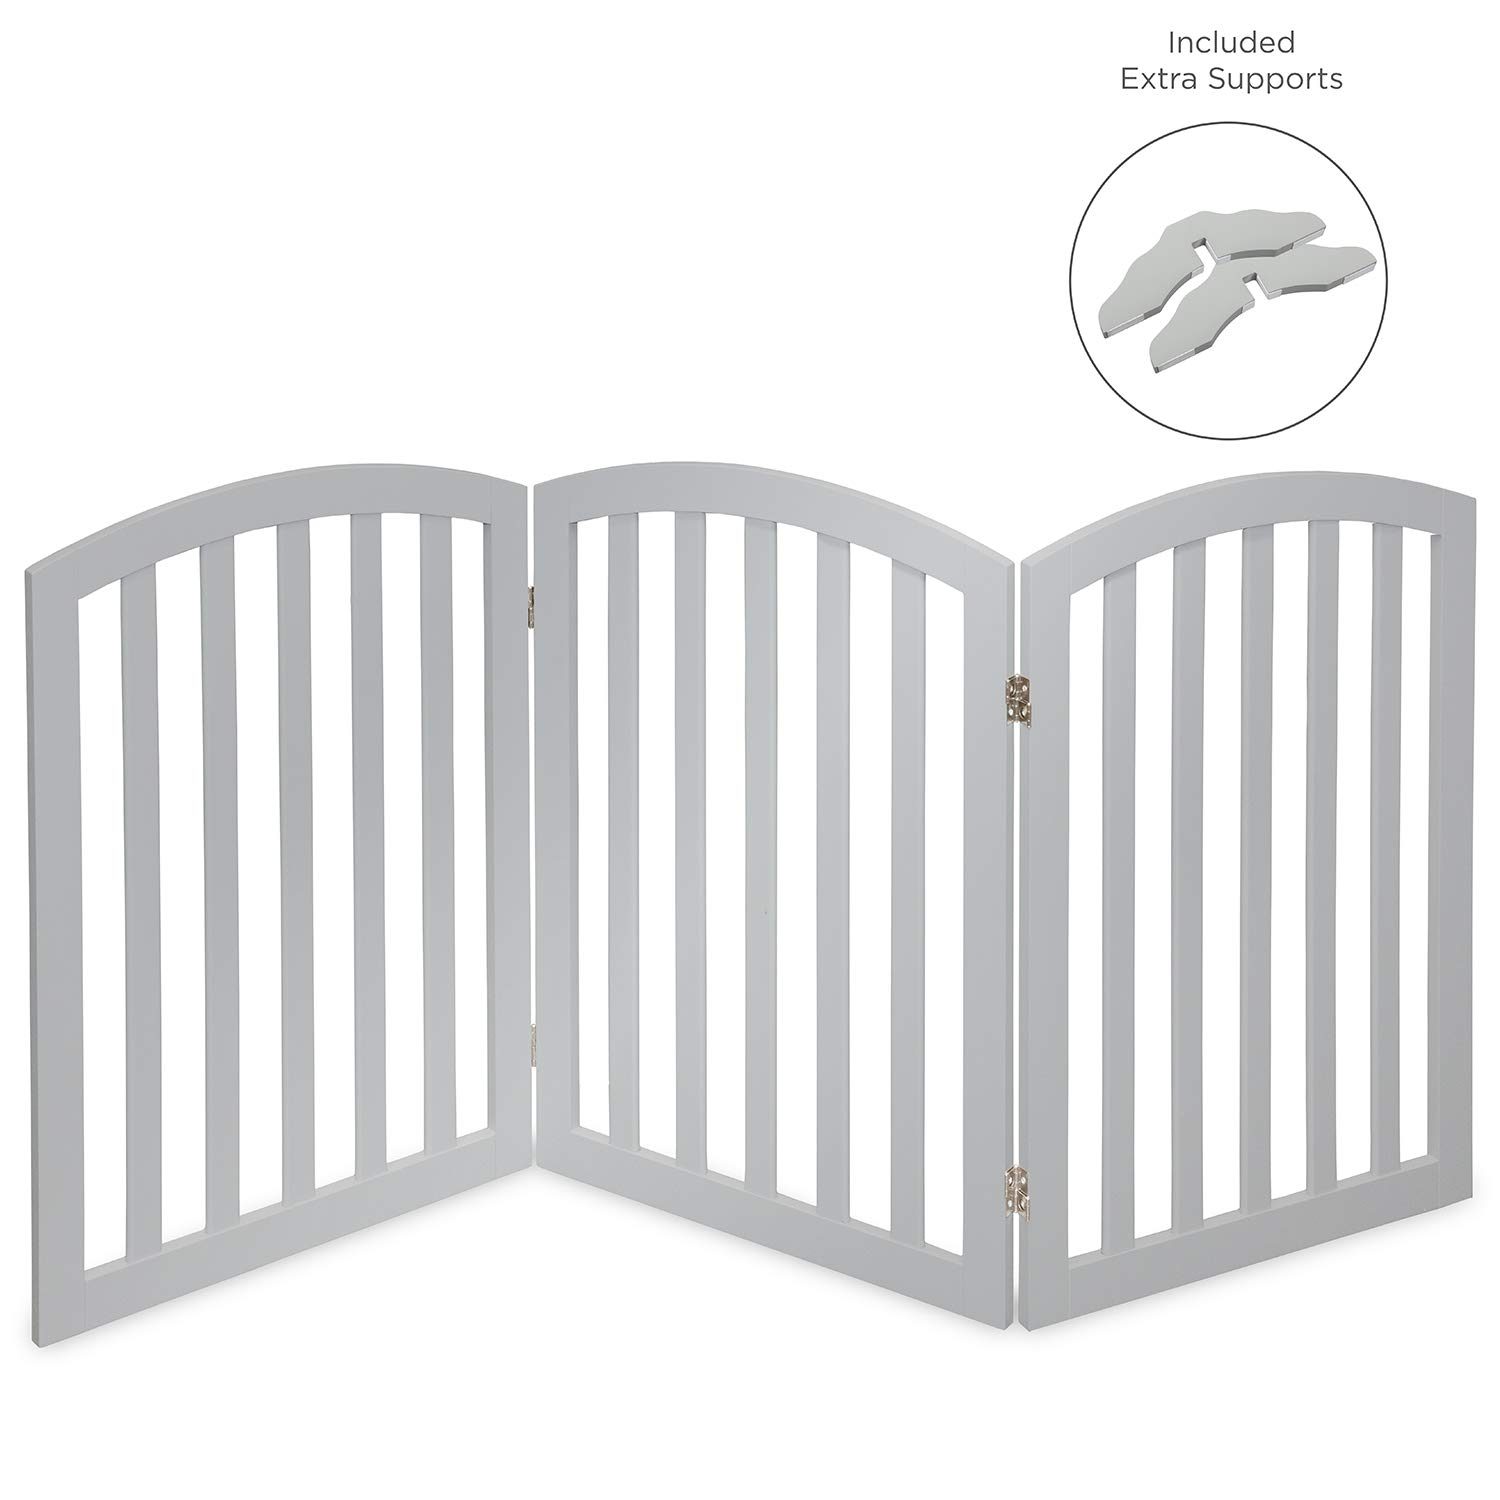 Arf Pets Free Standing Wood Dog Gate, Expands Up to 74'' Wide, 31.5'' Tall - Bonus Set of Foot Supporters Included – Grey Color